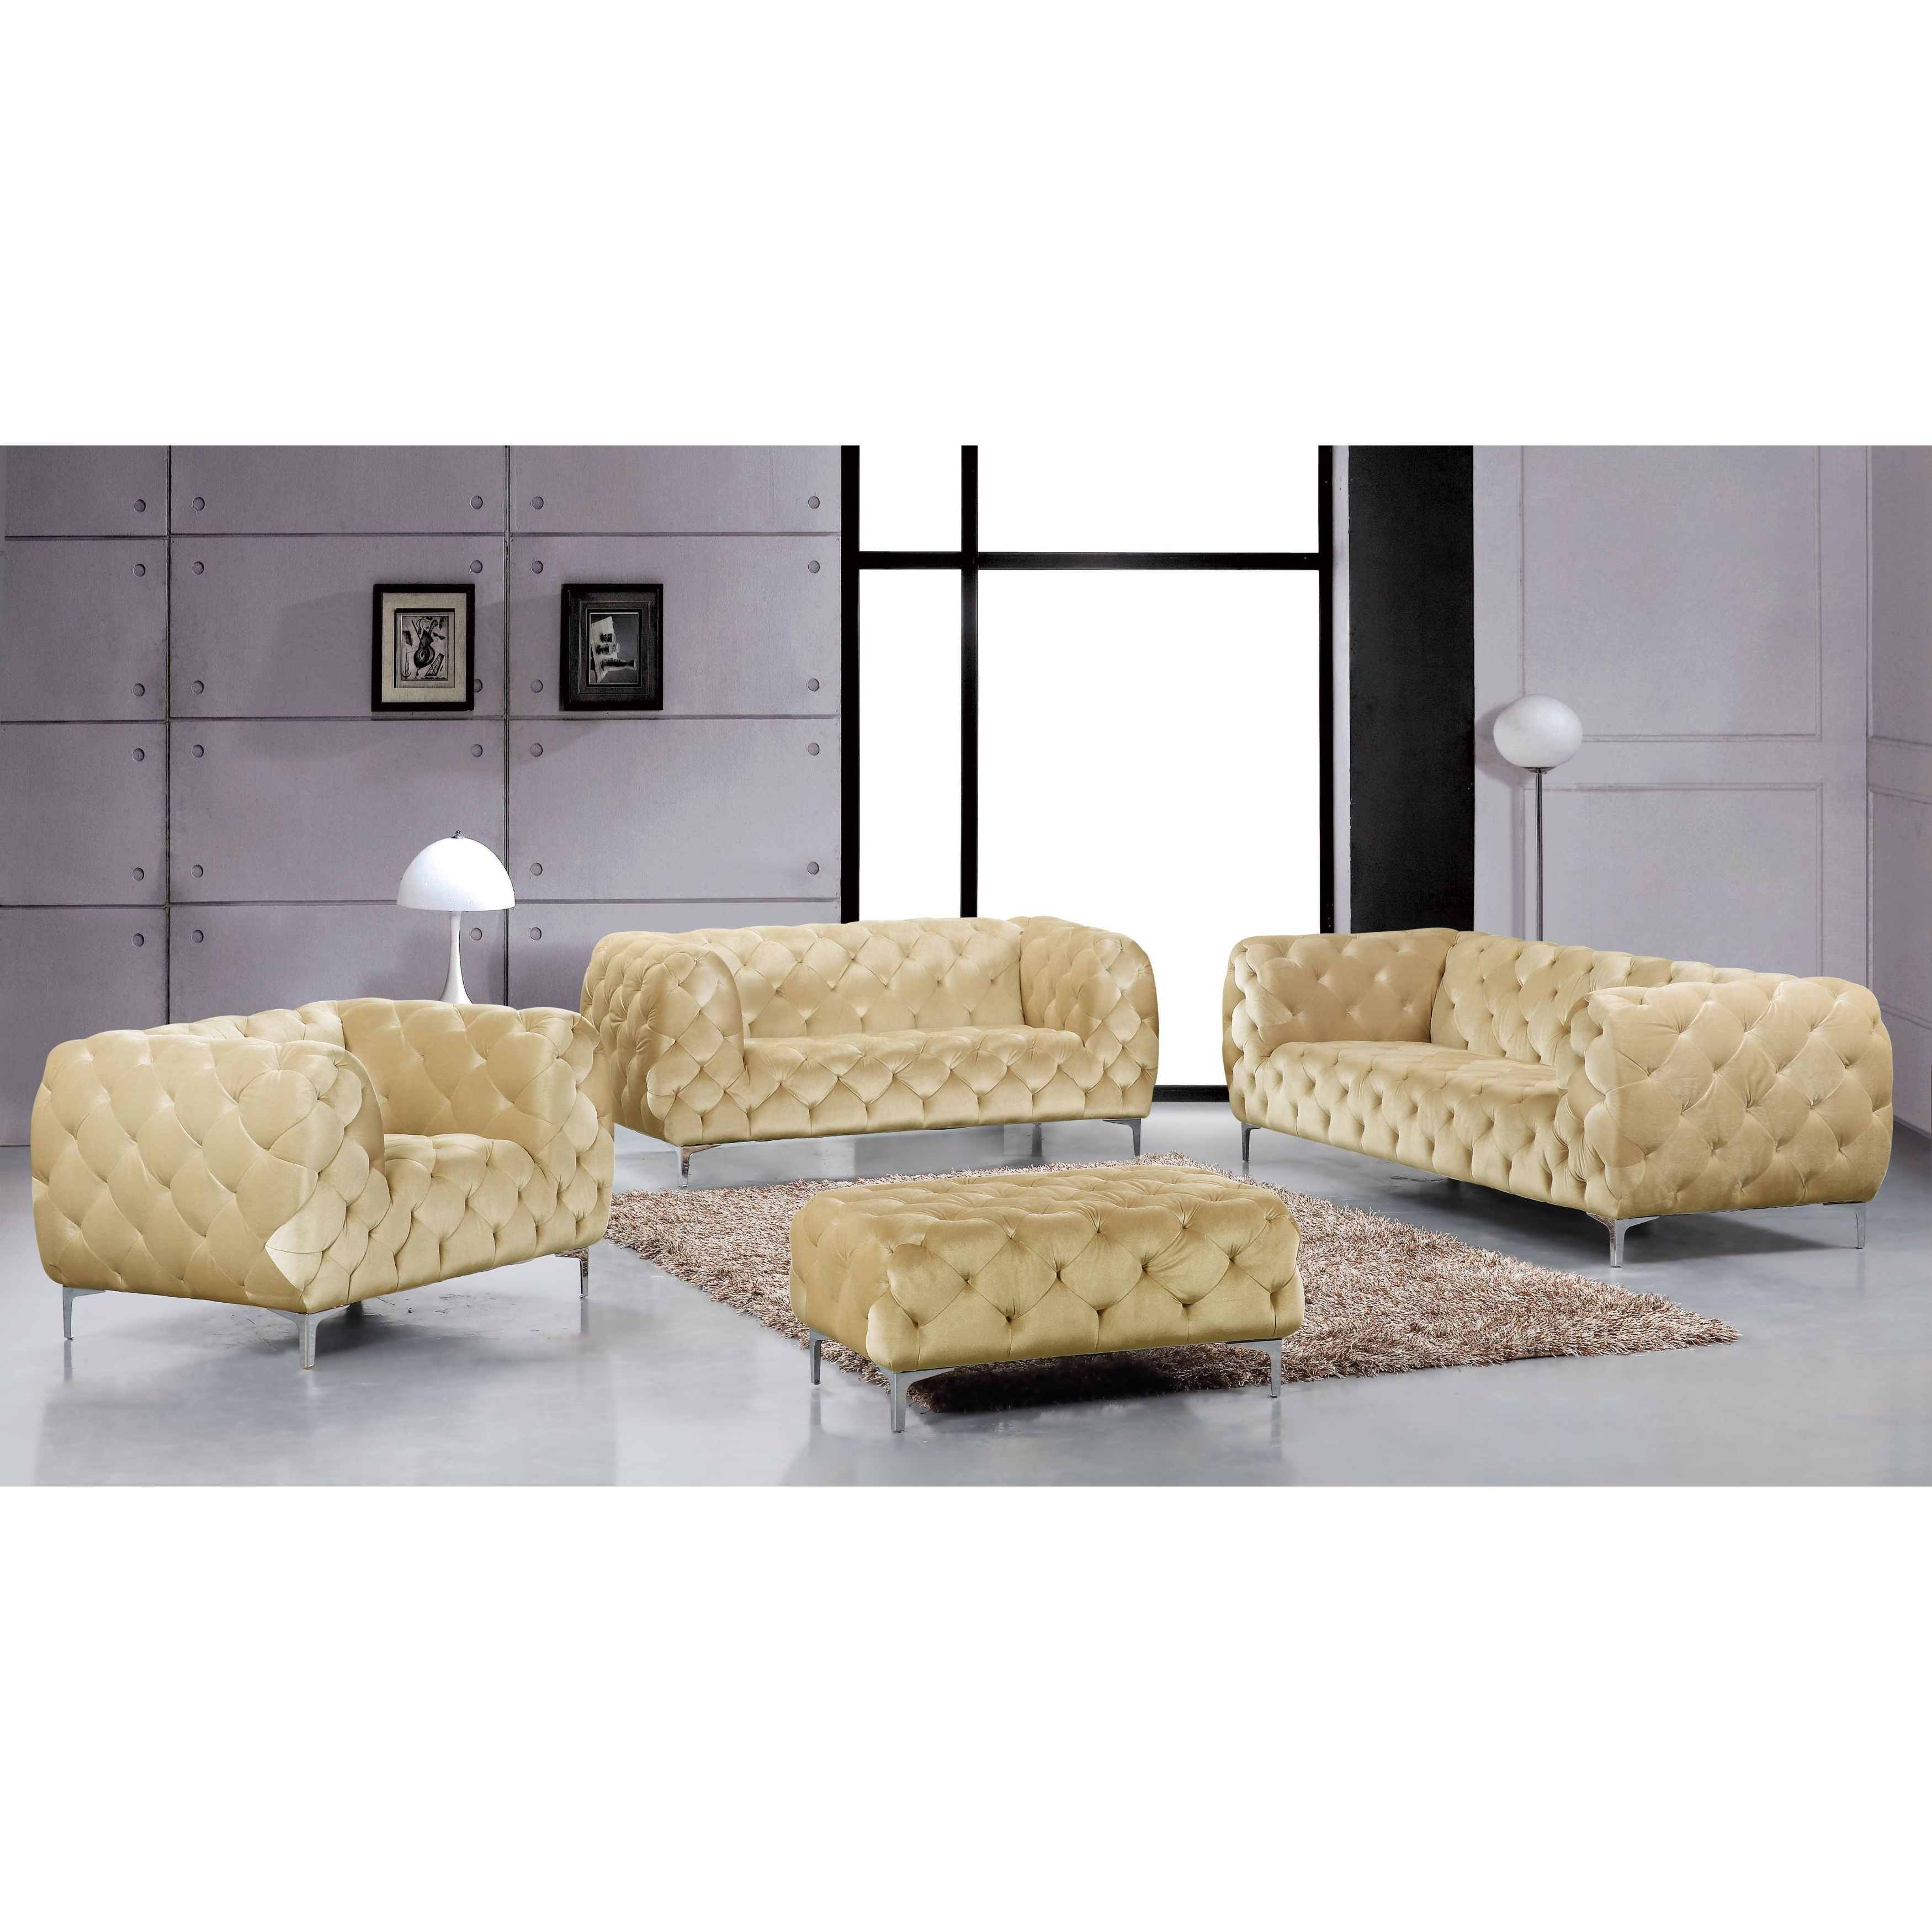 Shop Meridian Mercer Beige Velvet 4 Piece Furniture Set – Free Inside Fashionable Mercer Foam Oversized Sofa Chairs (View 17 of 20)